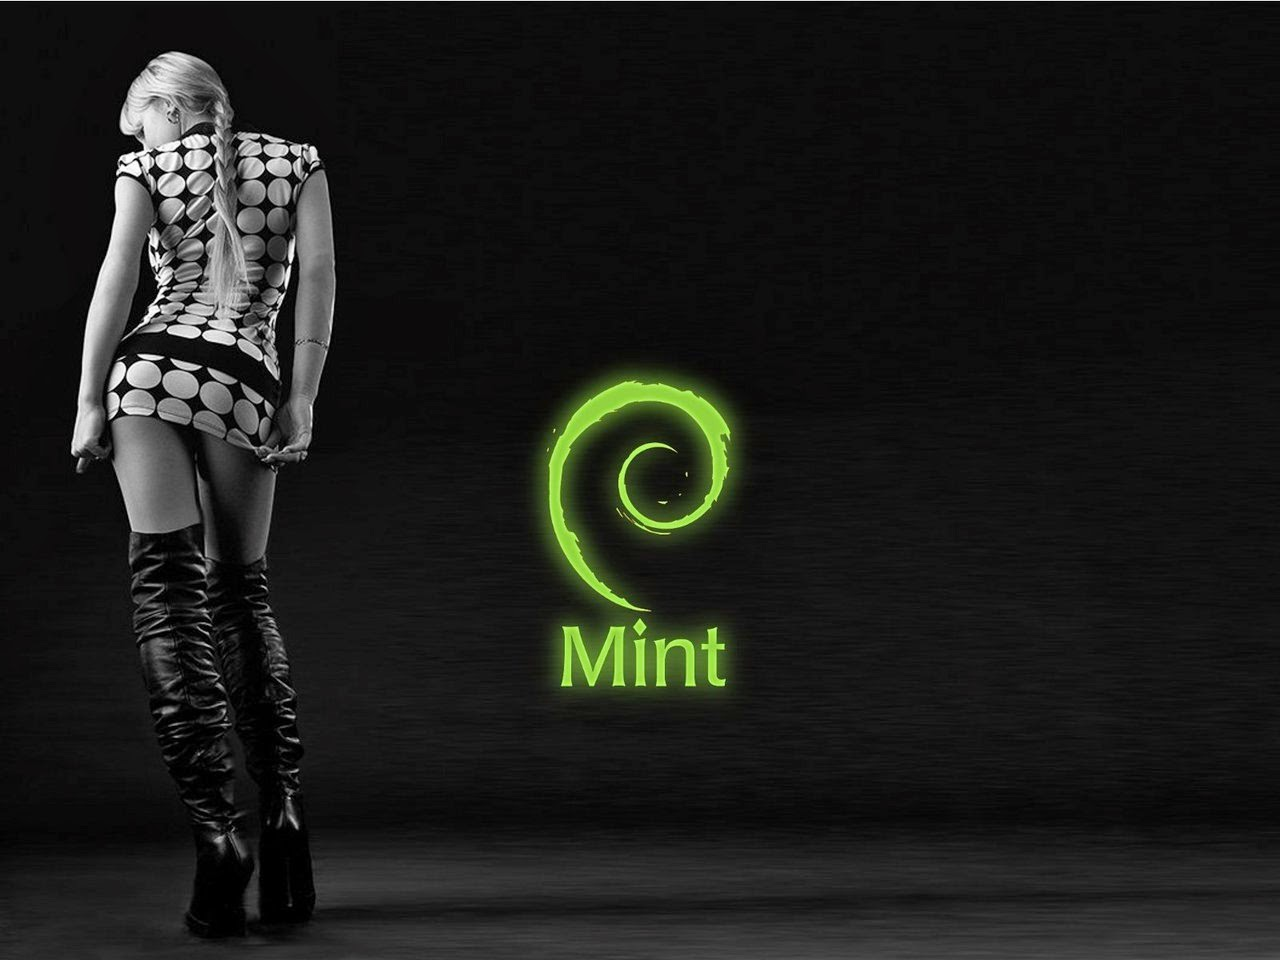 Linux Mint HD Wallpapers HD Wallpapers 1280x960